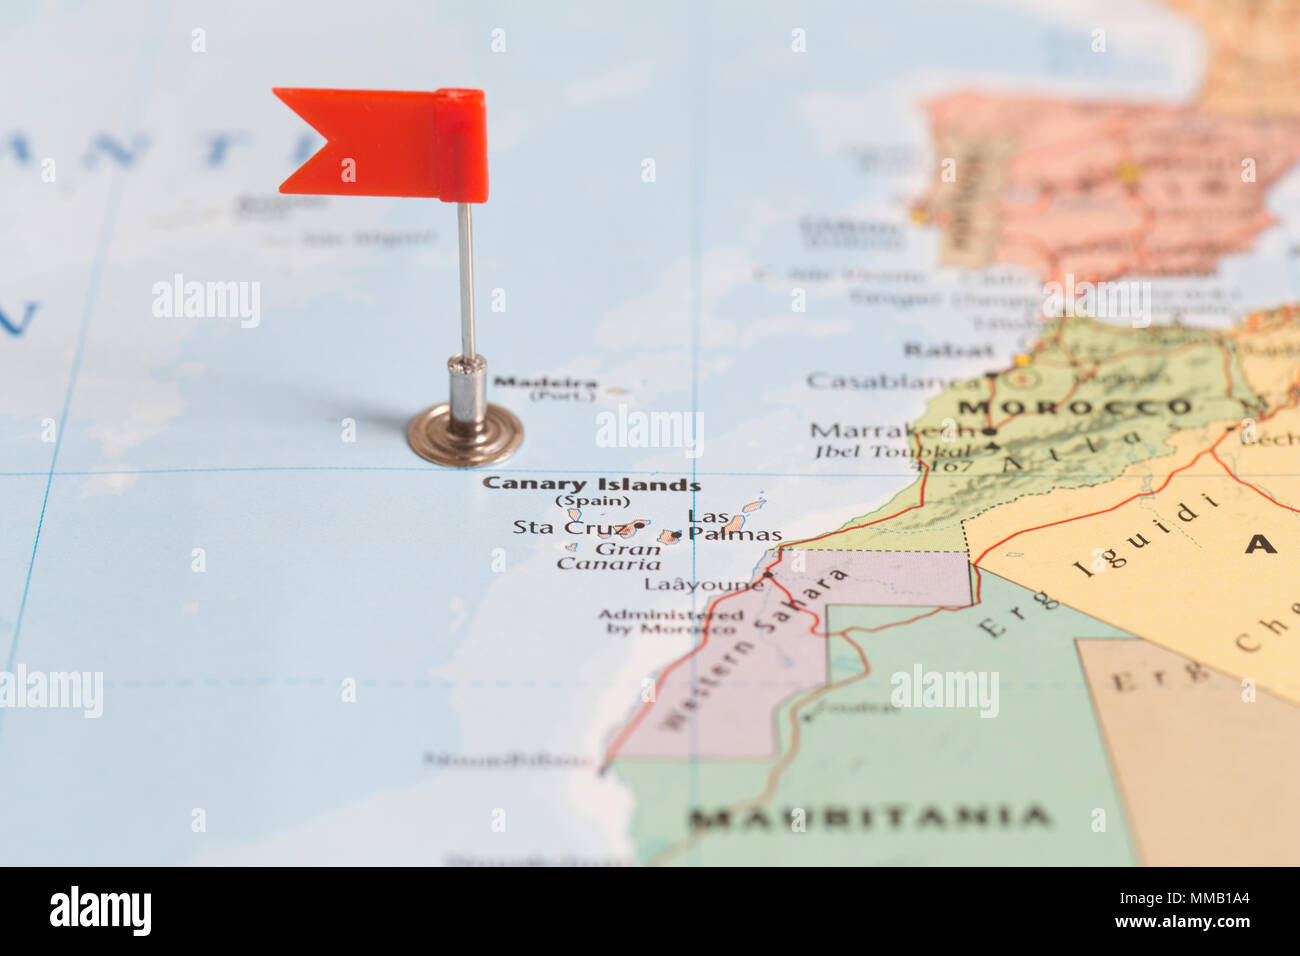 small red flag marking the canary islands on a world map stock image